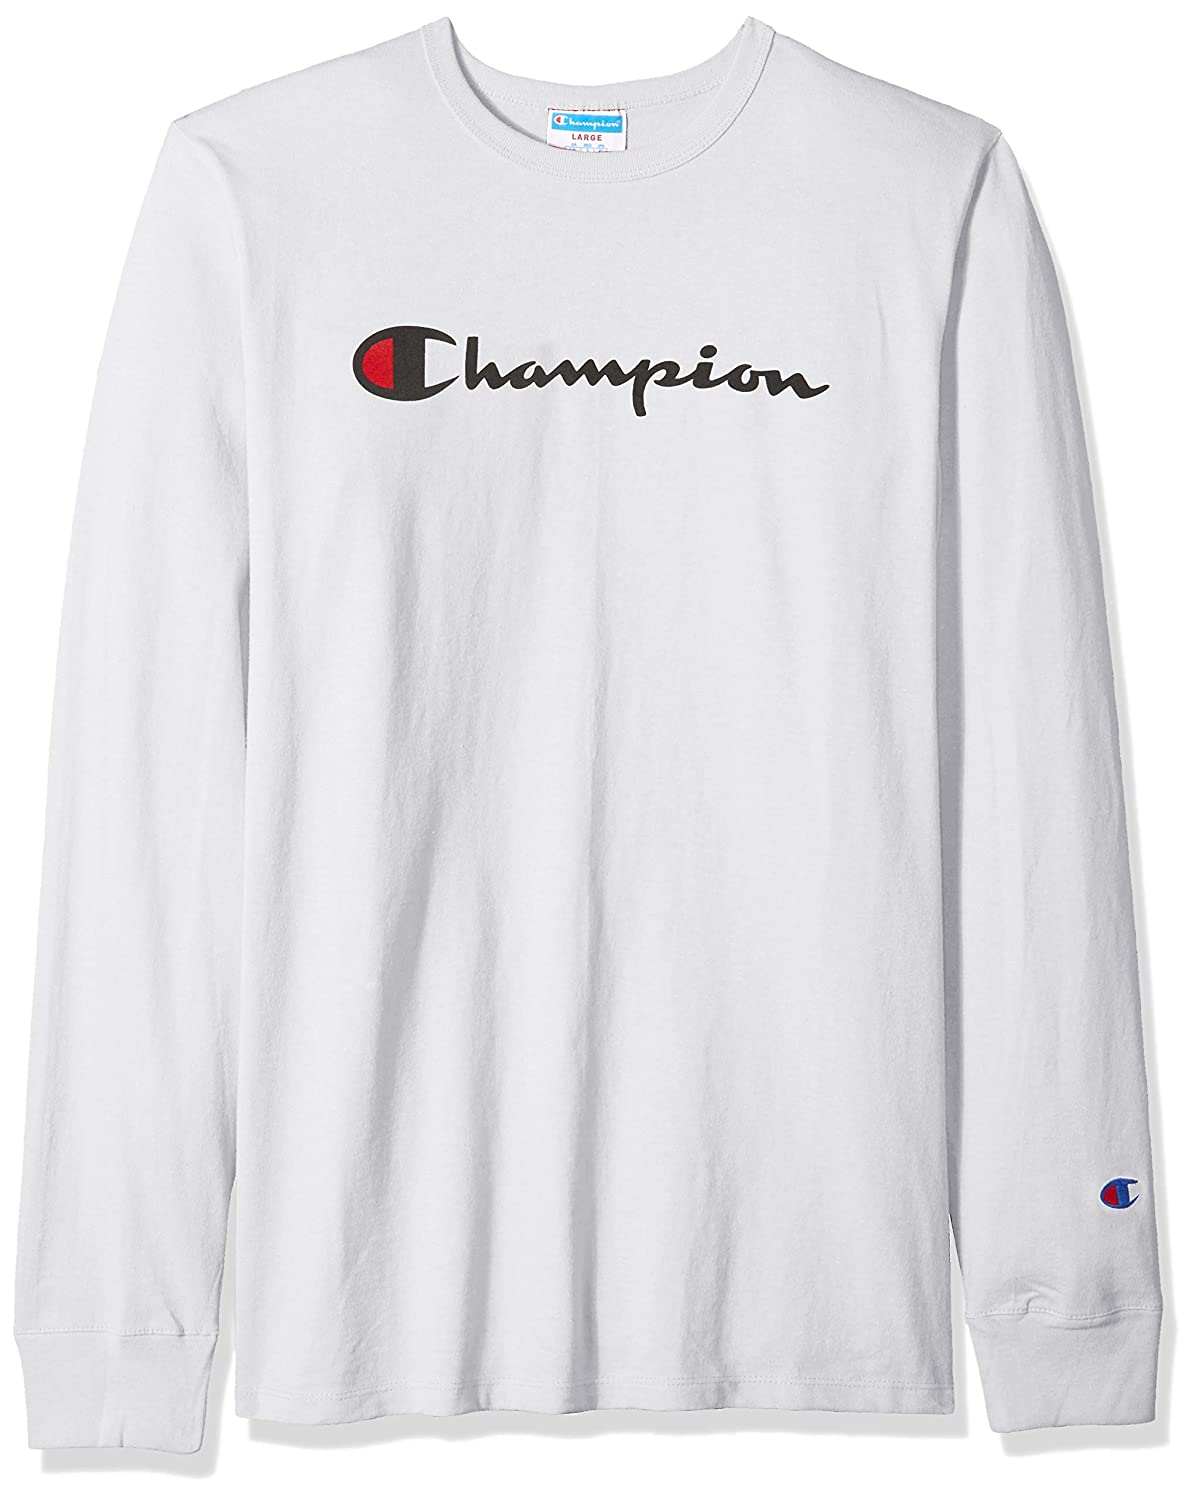 47d0a5ea Amazon.com: Champion LIFE Men's Heritage Long Sleeve Tee: Clothing